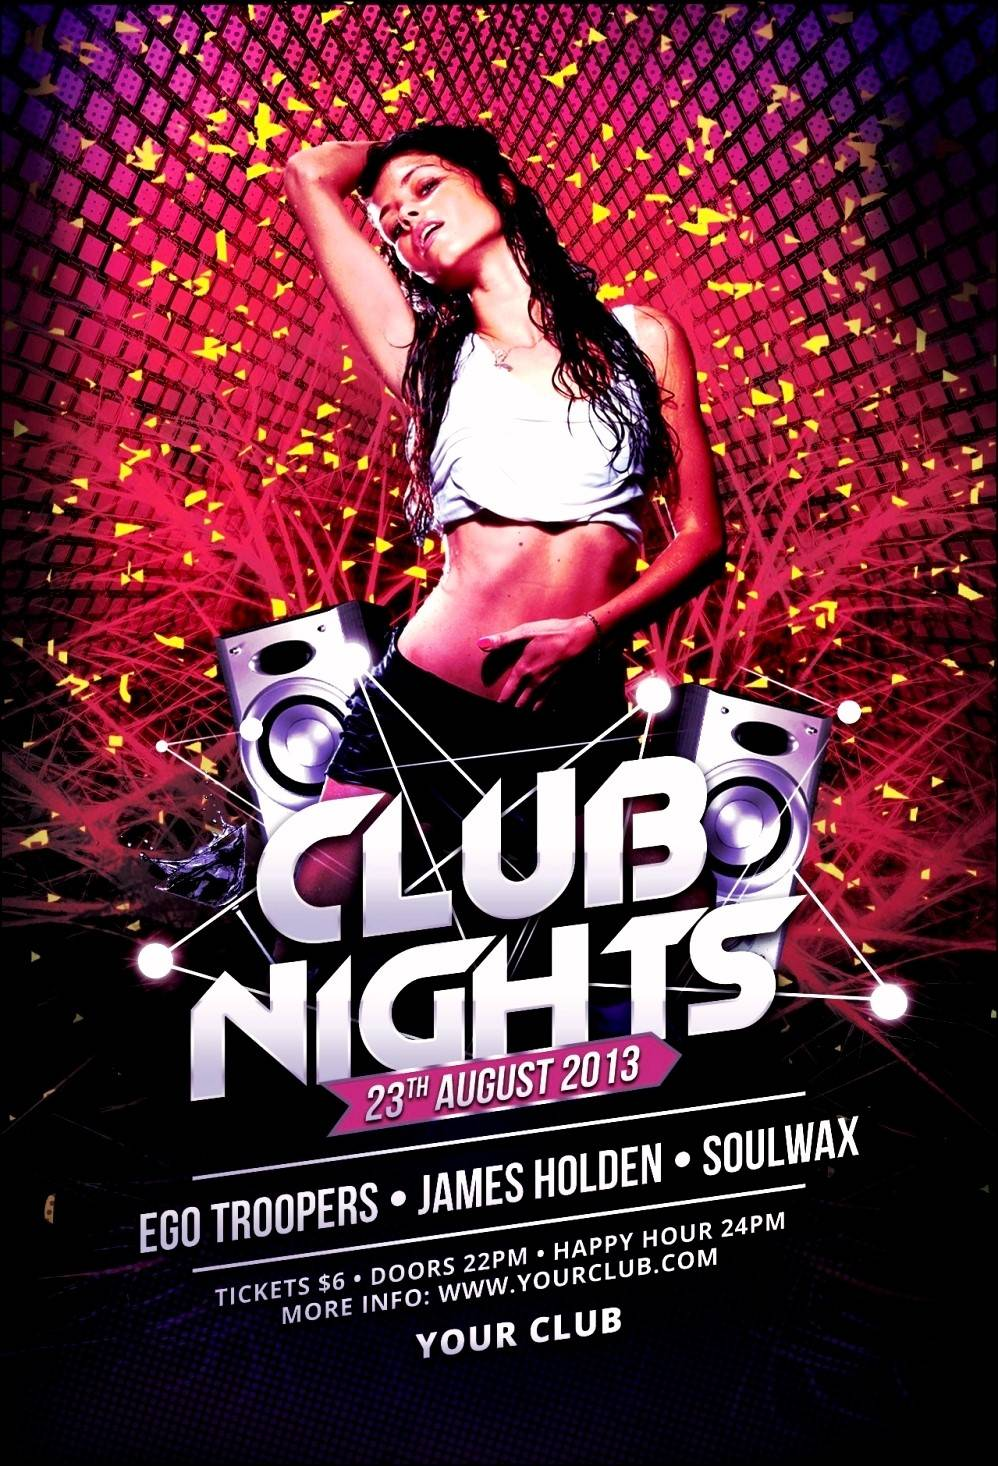 Nightclub Flyer Background Templates